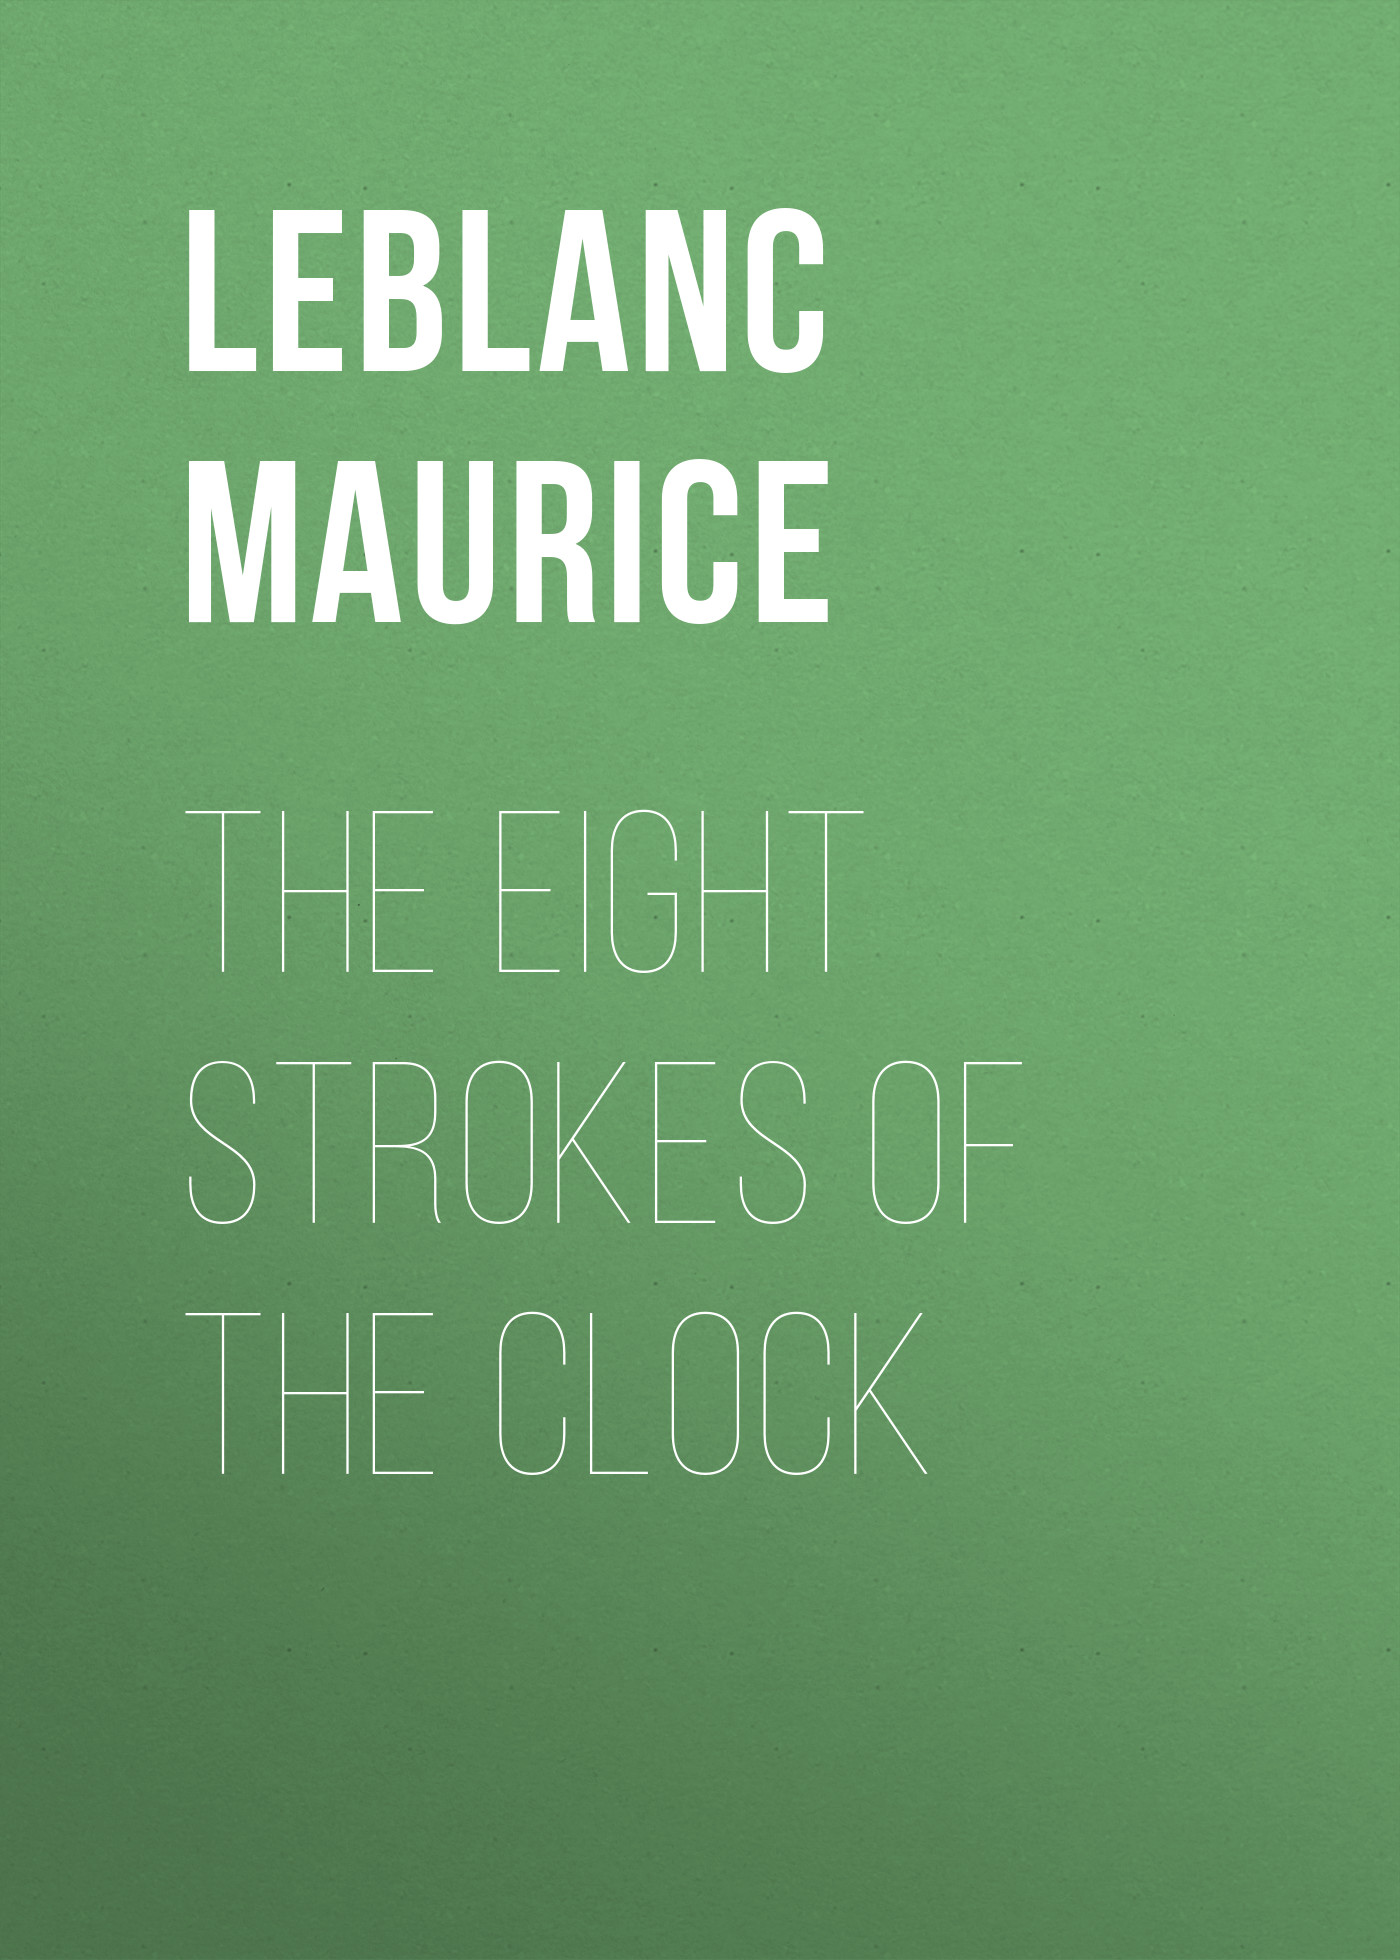 Leblanc Maurice The Eight Strokes of the Clock бордюр ceradim chocolate line strokes 2x50